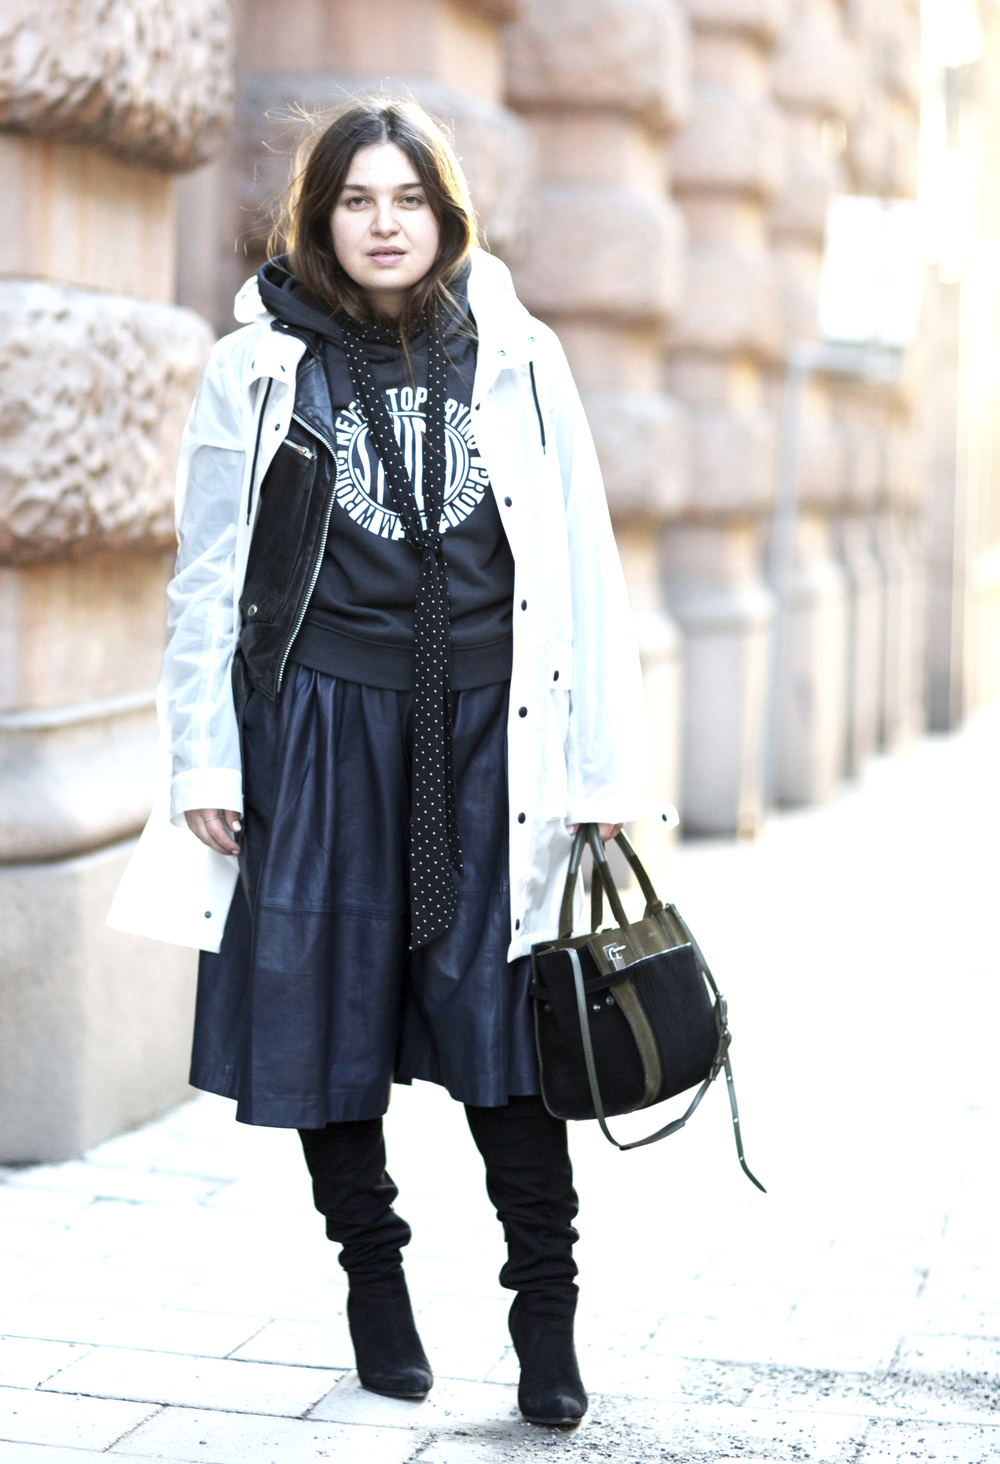 Coat by Brixtol x Official Gallery. Leather jacket from Shock. Sweater from Gina Tricot. Leather culottes by 2nd Day. Skinny scarf from Zara. Over the knee boots, H&M. Bag by Zadig et Voltaire.